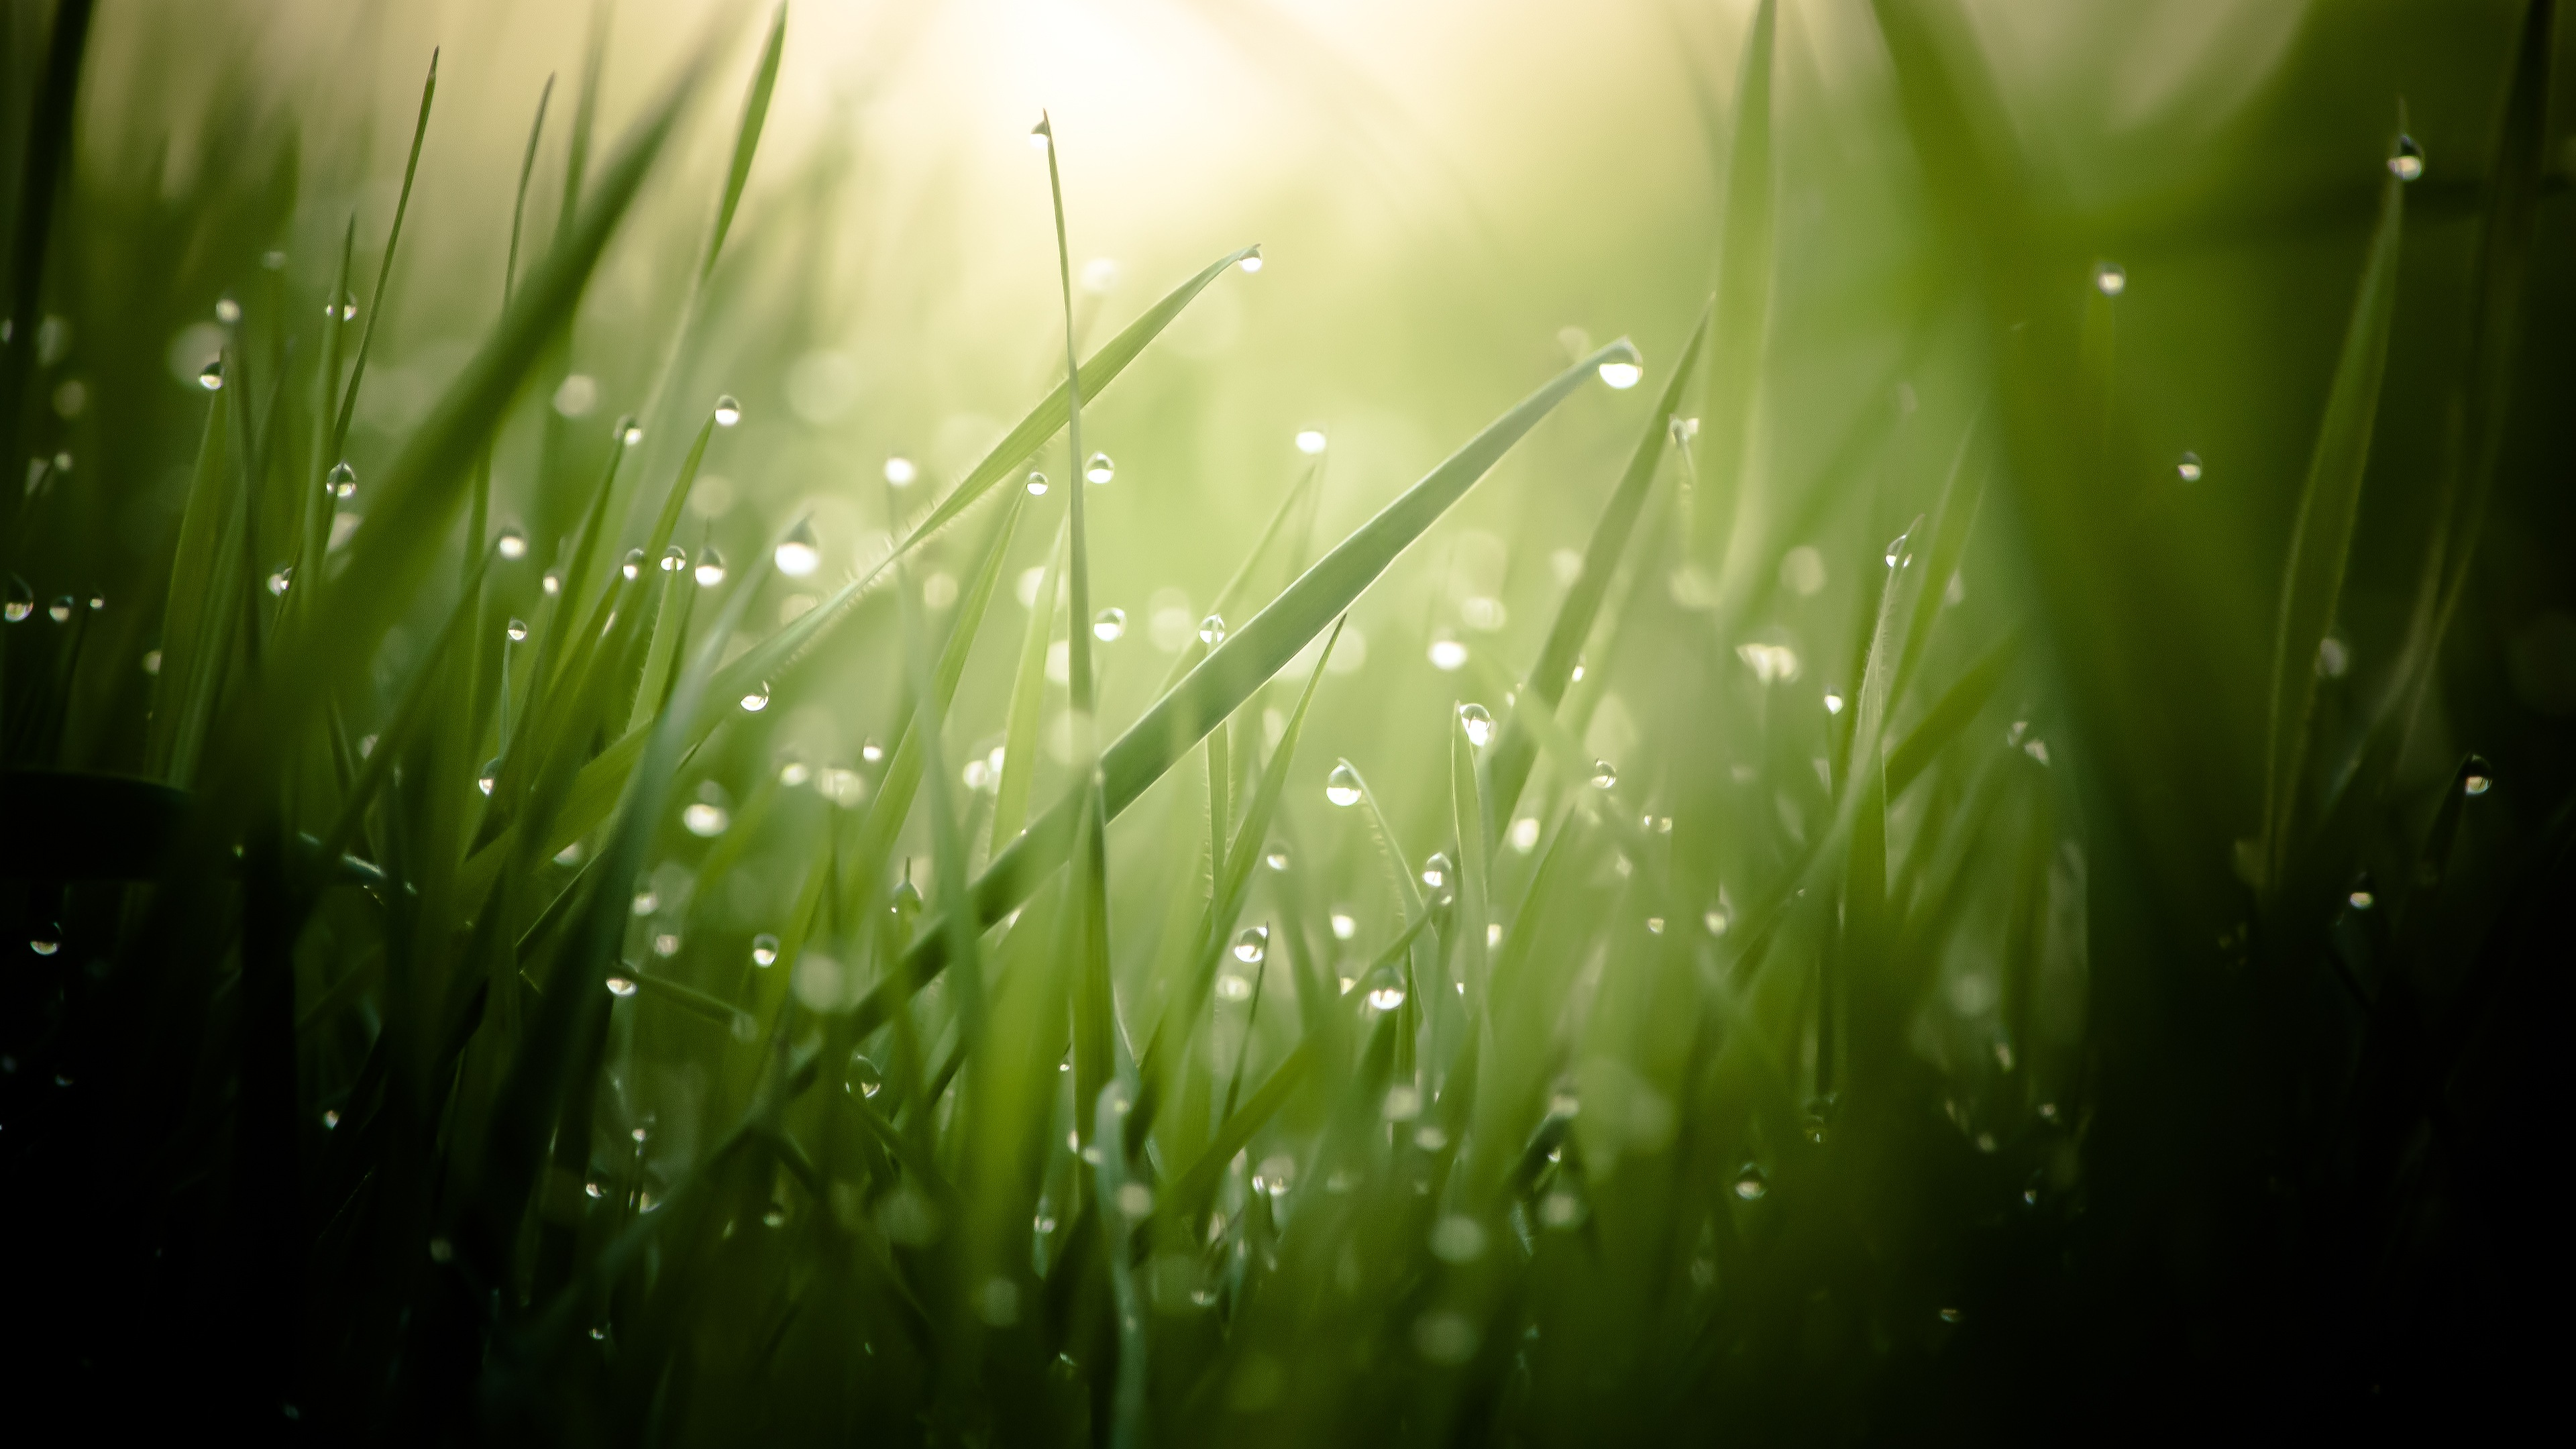 Morning Dew On Grass Threads 4K Ultra HD Desktop Wallpaper